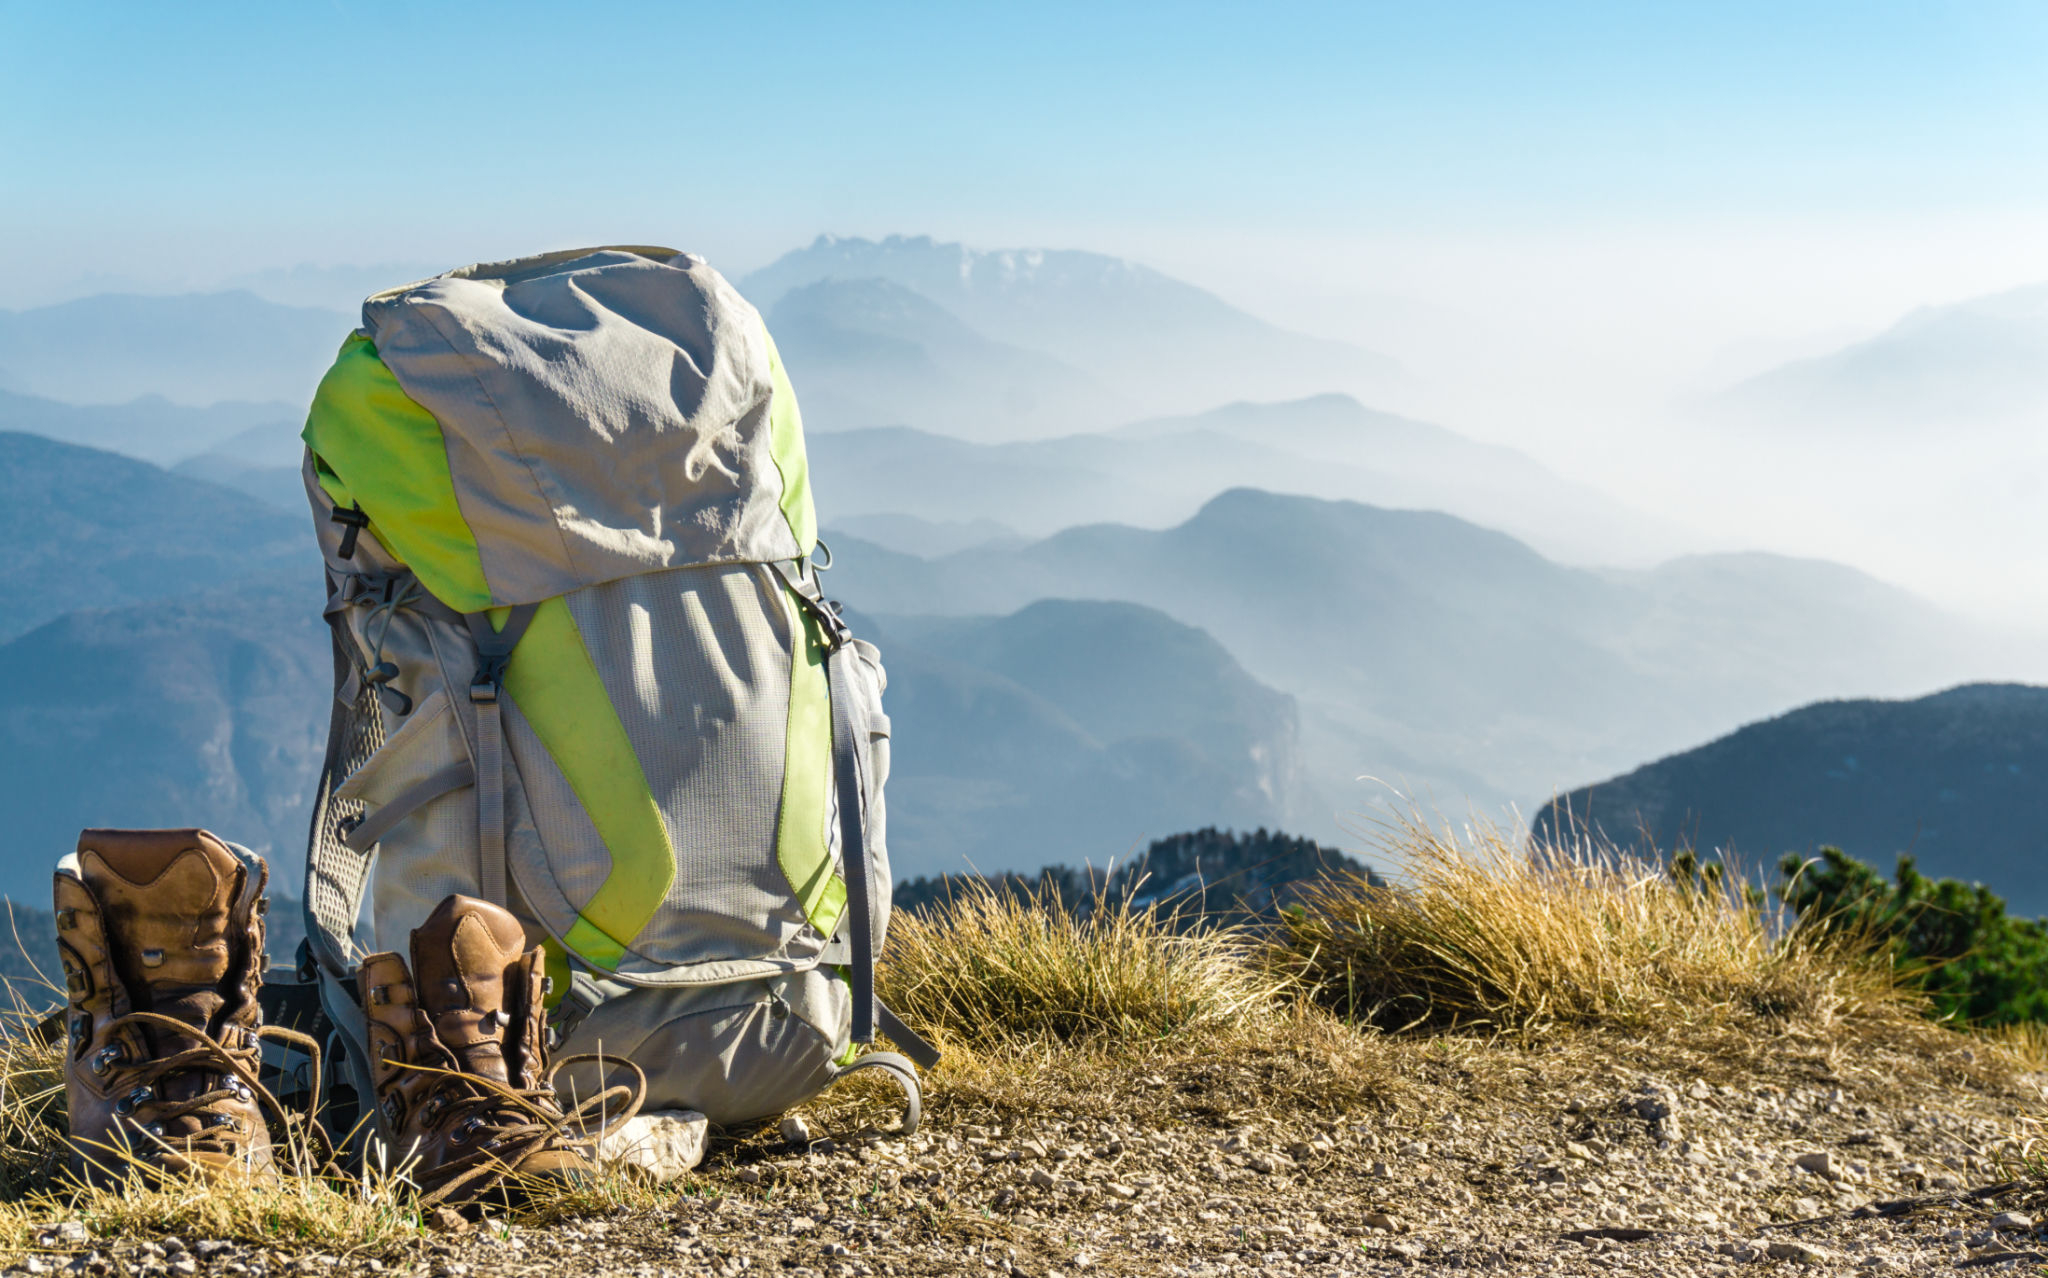 Hiking Backpack: Know the Must-haves for Hiking